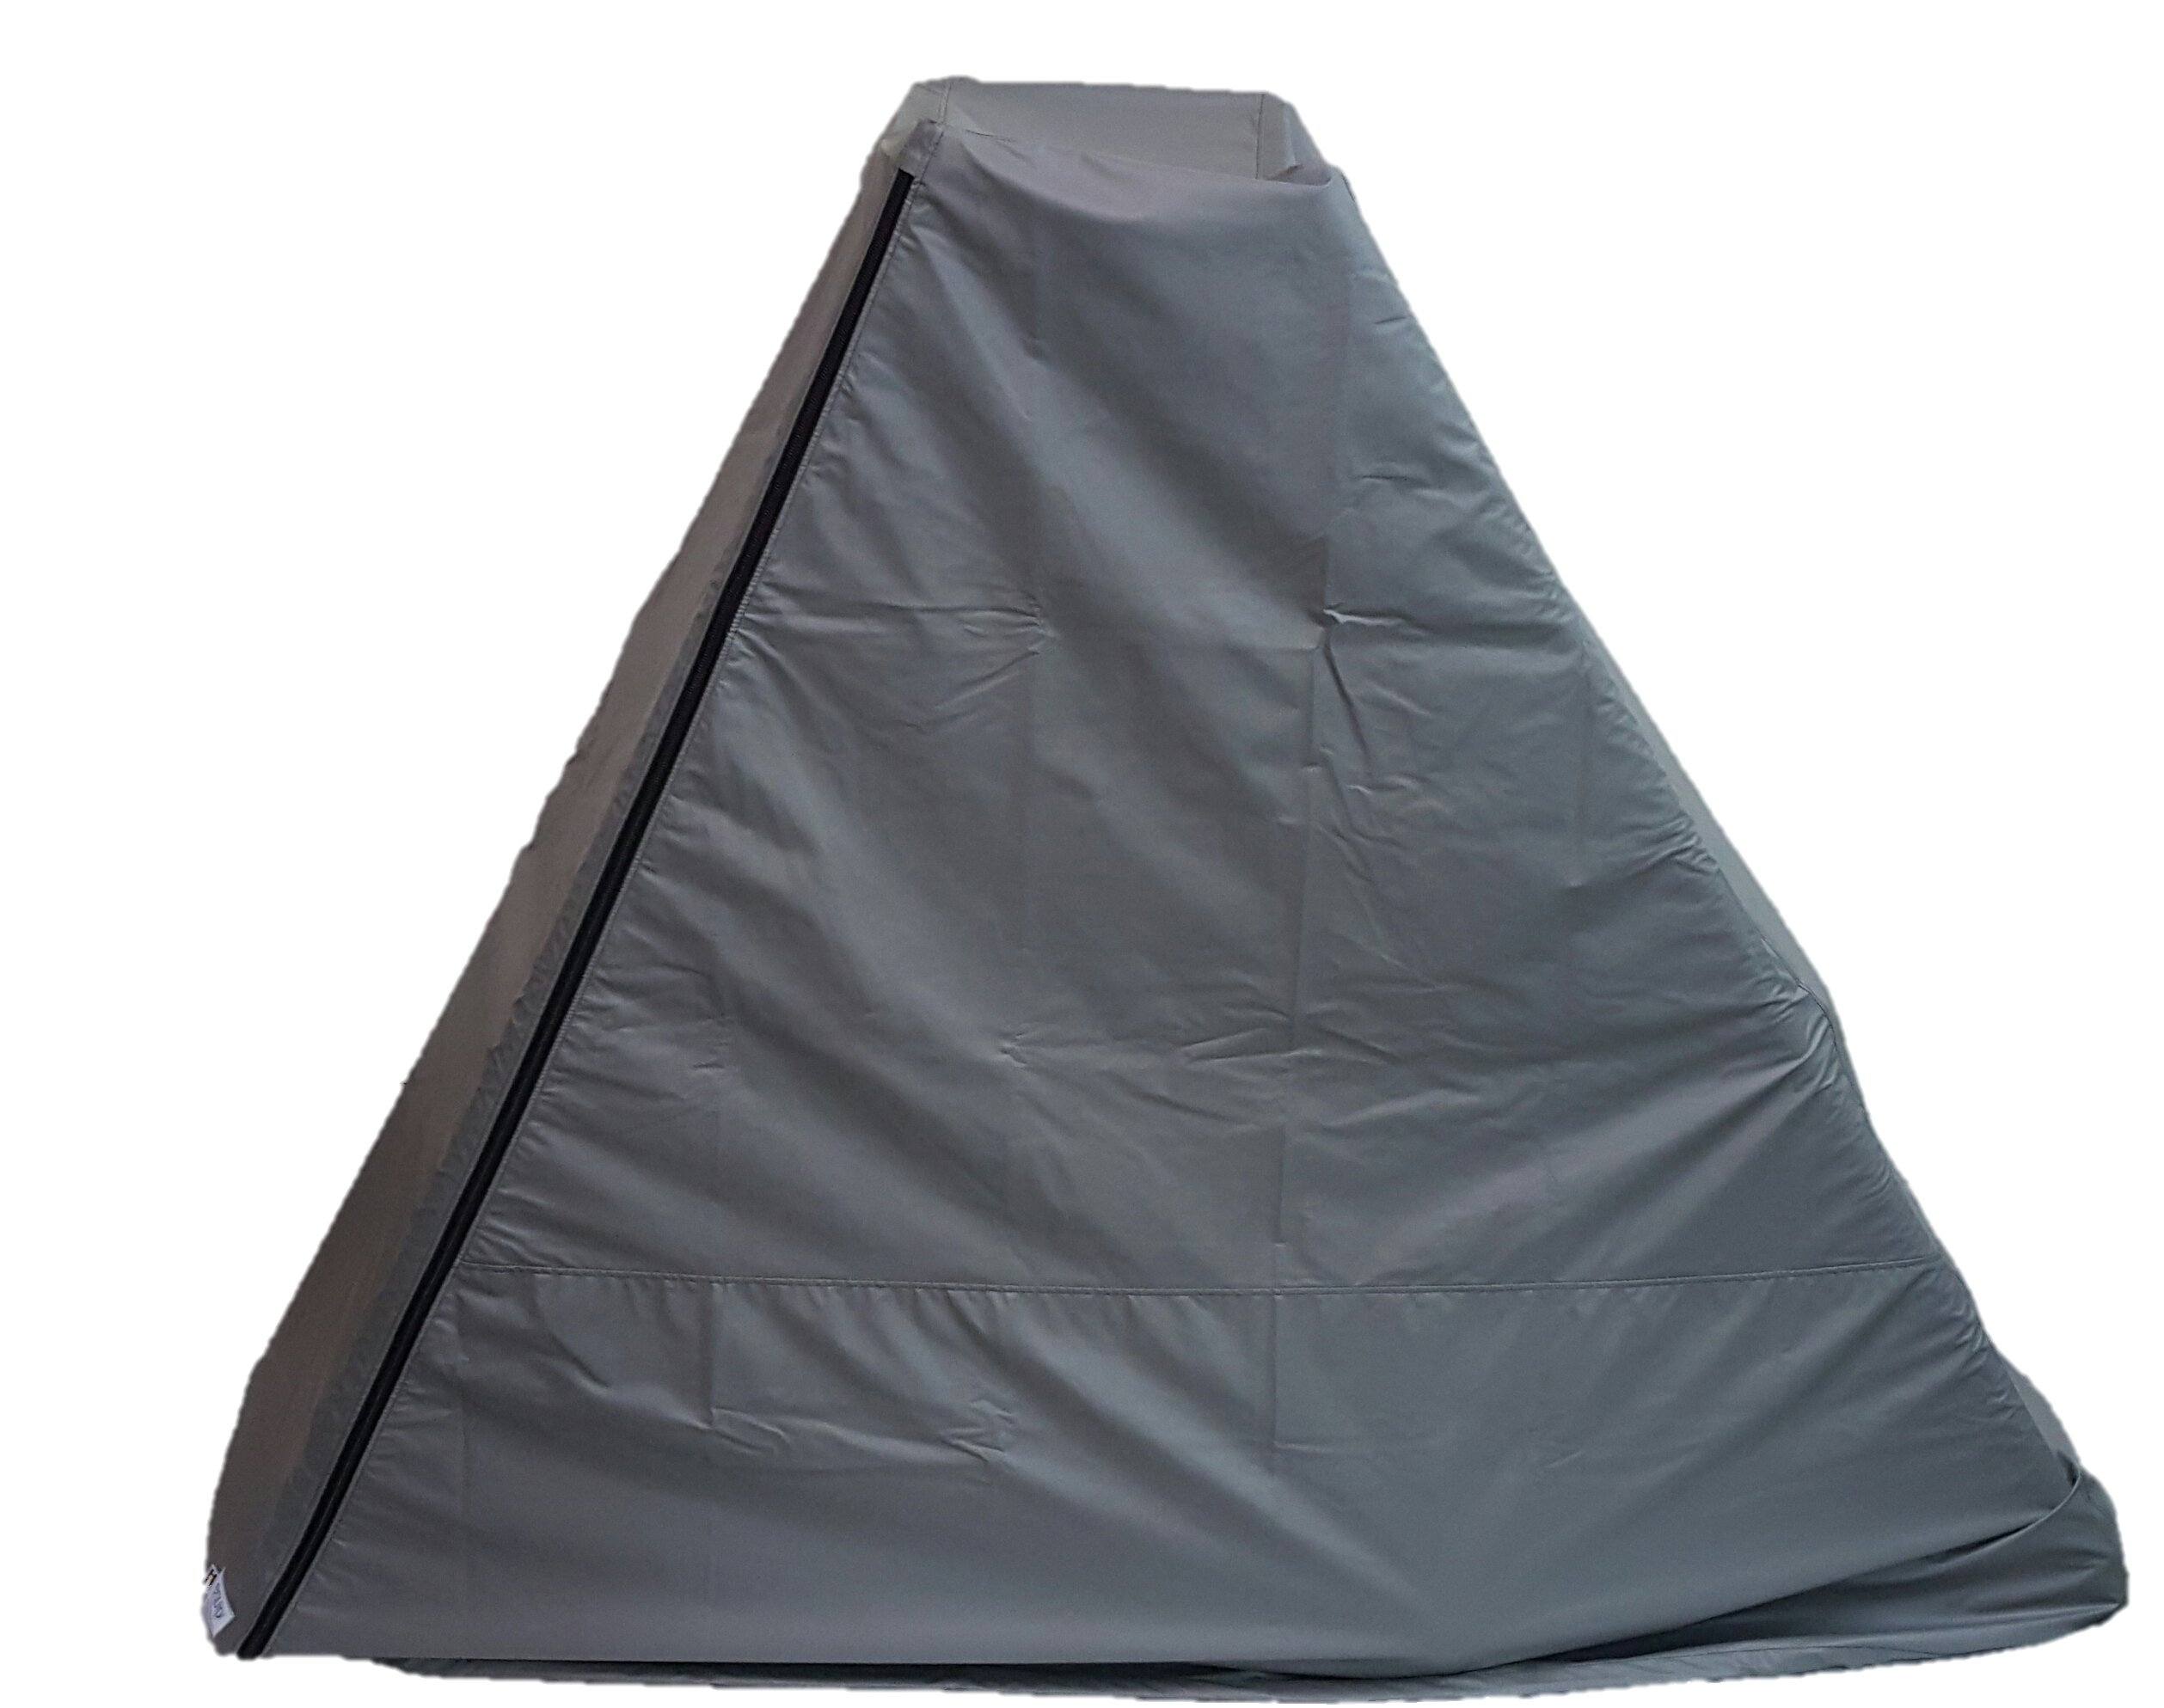 The Best Elliptical Machine Cover | Front Drive. Durable & Water-Resistant Fitness Equipment Protective Cover Ideal for Indoor or Outdoor Use. Made in USA with 3-Year Warranty. (Grey, Small)